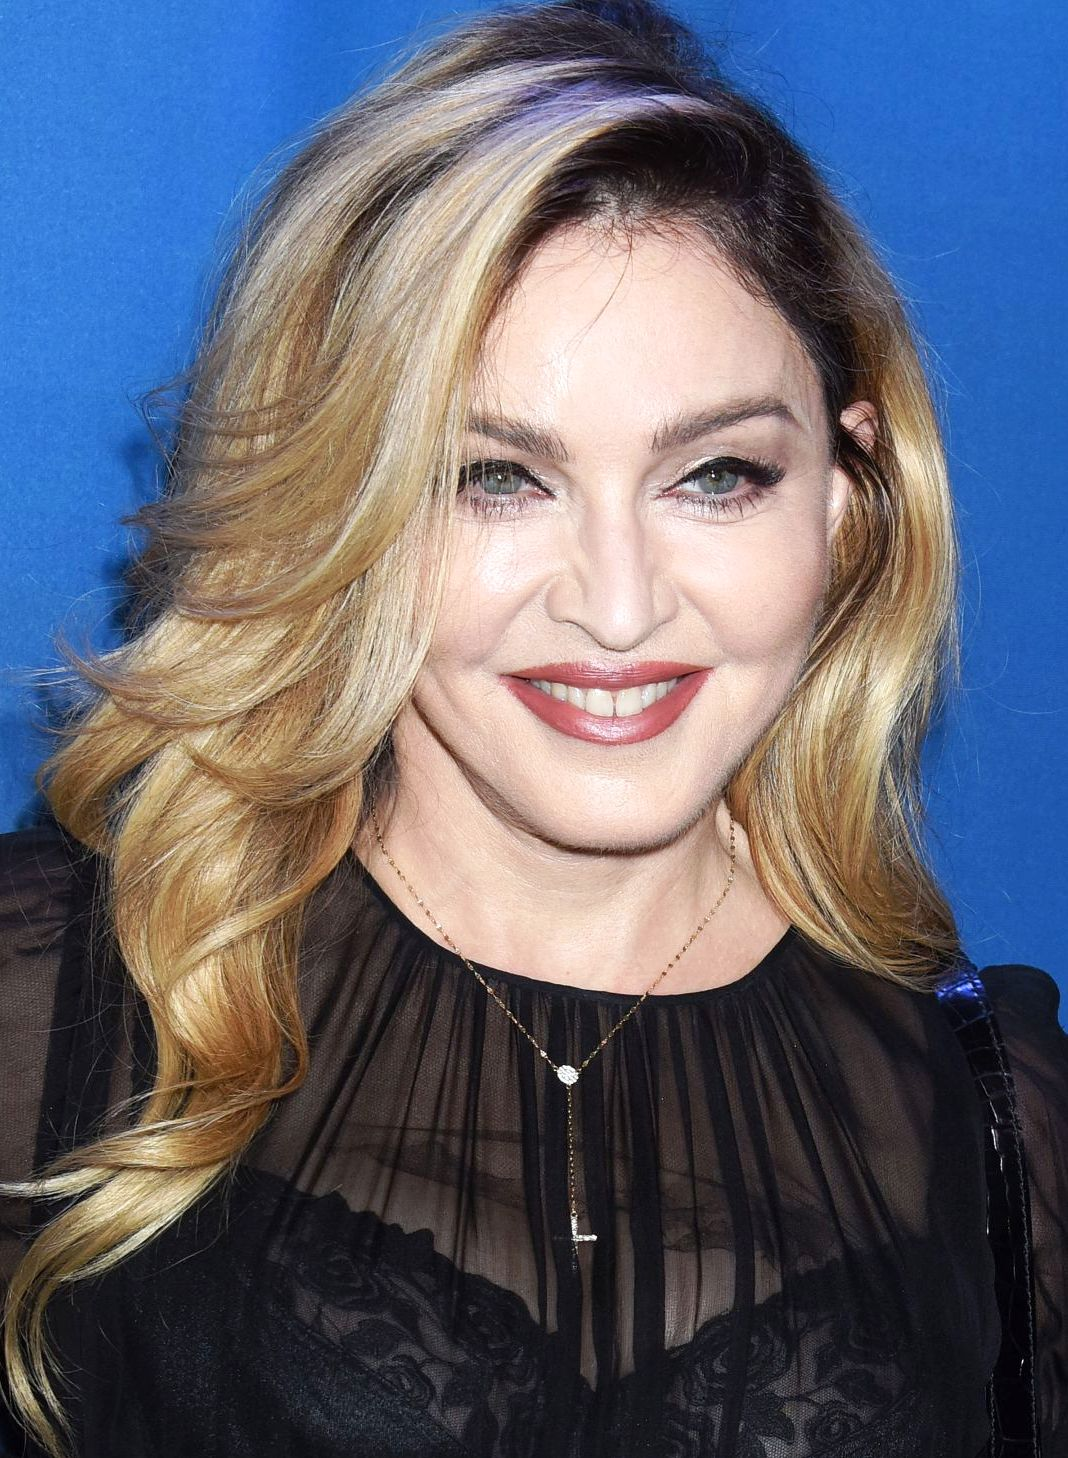 a biography of madonna louise ciccone an american singer songwriter actress and businesswoman Madonna louise ciccone (born august 16, 1958) is an american singer- songwriter, actress, and businesswoman one of the most prominent cultural  icons for.